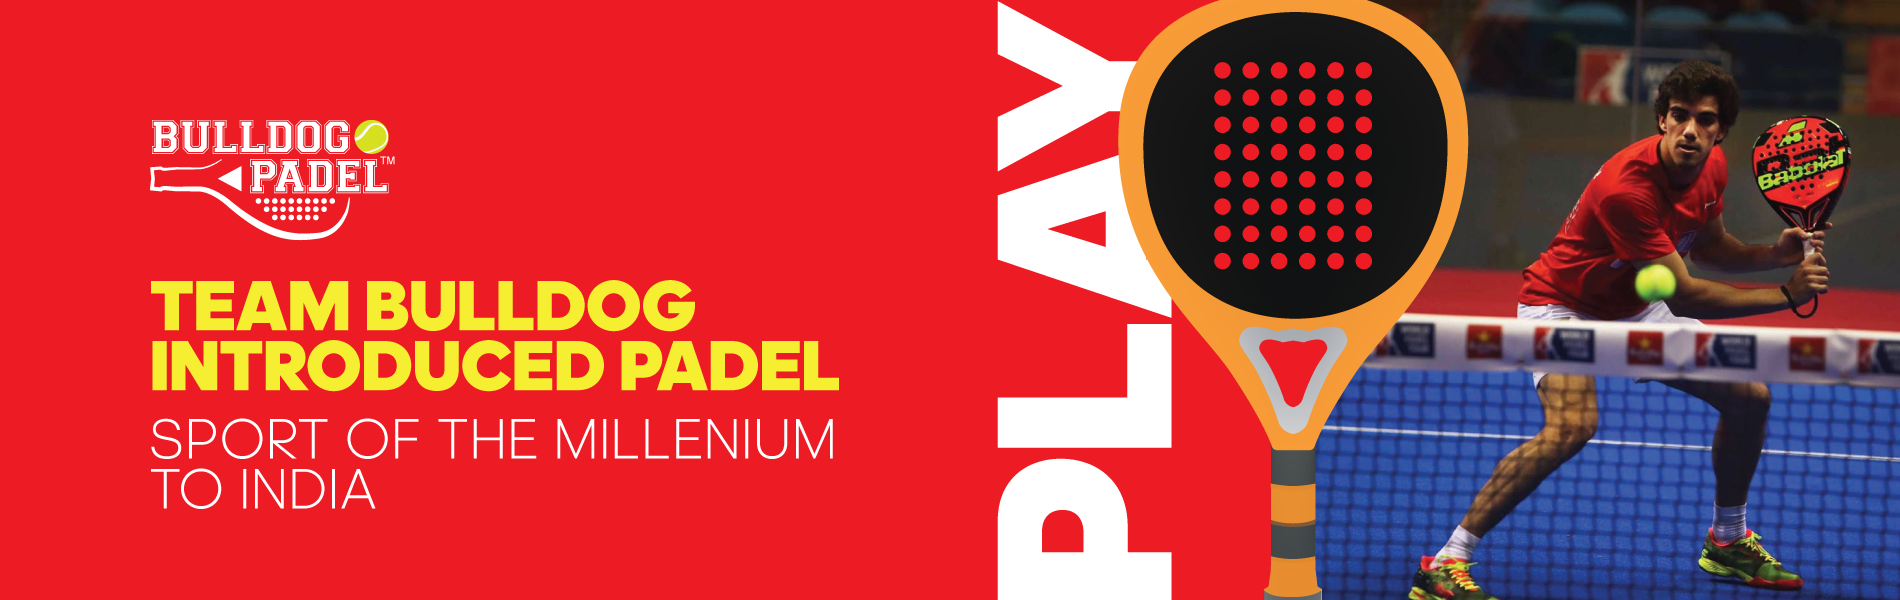 Padel, India Padel, Indian Padel Federation, Bulldog Padel, Padel India, Padel Court India, Padel Open Tour, Indian Padel Tour